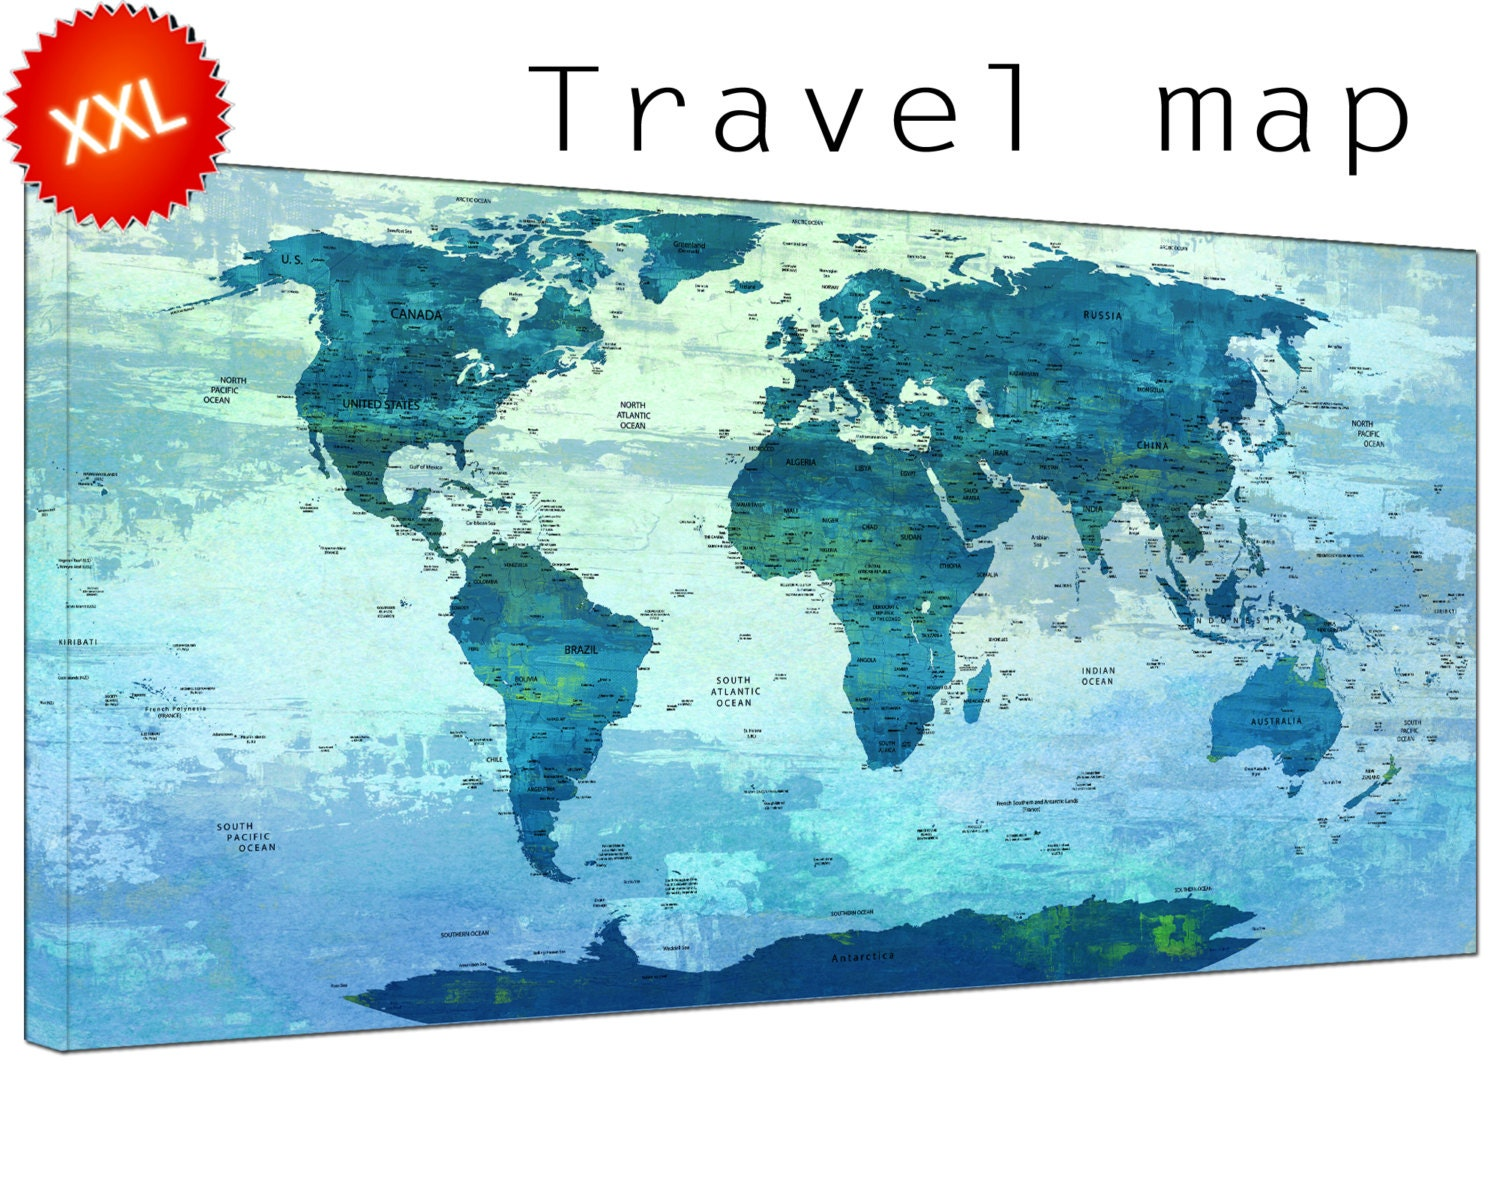 Push pin travel world map canvas art print large push pin travel push pin travel world map canvas art print large push pin travel world map with countries home office decor print on canvas gumiabroncs Images